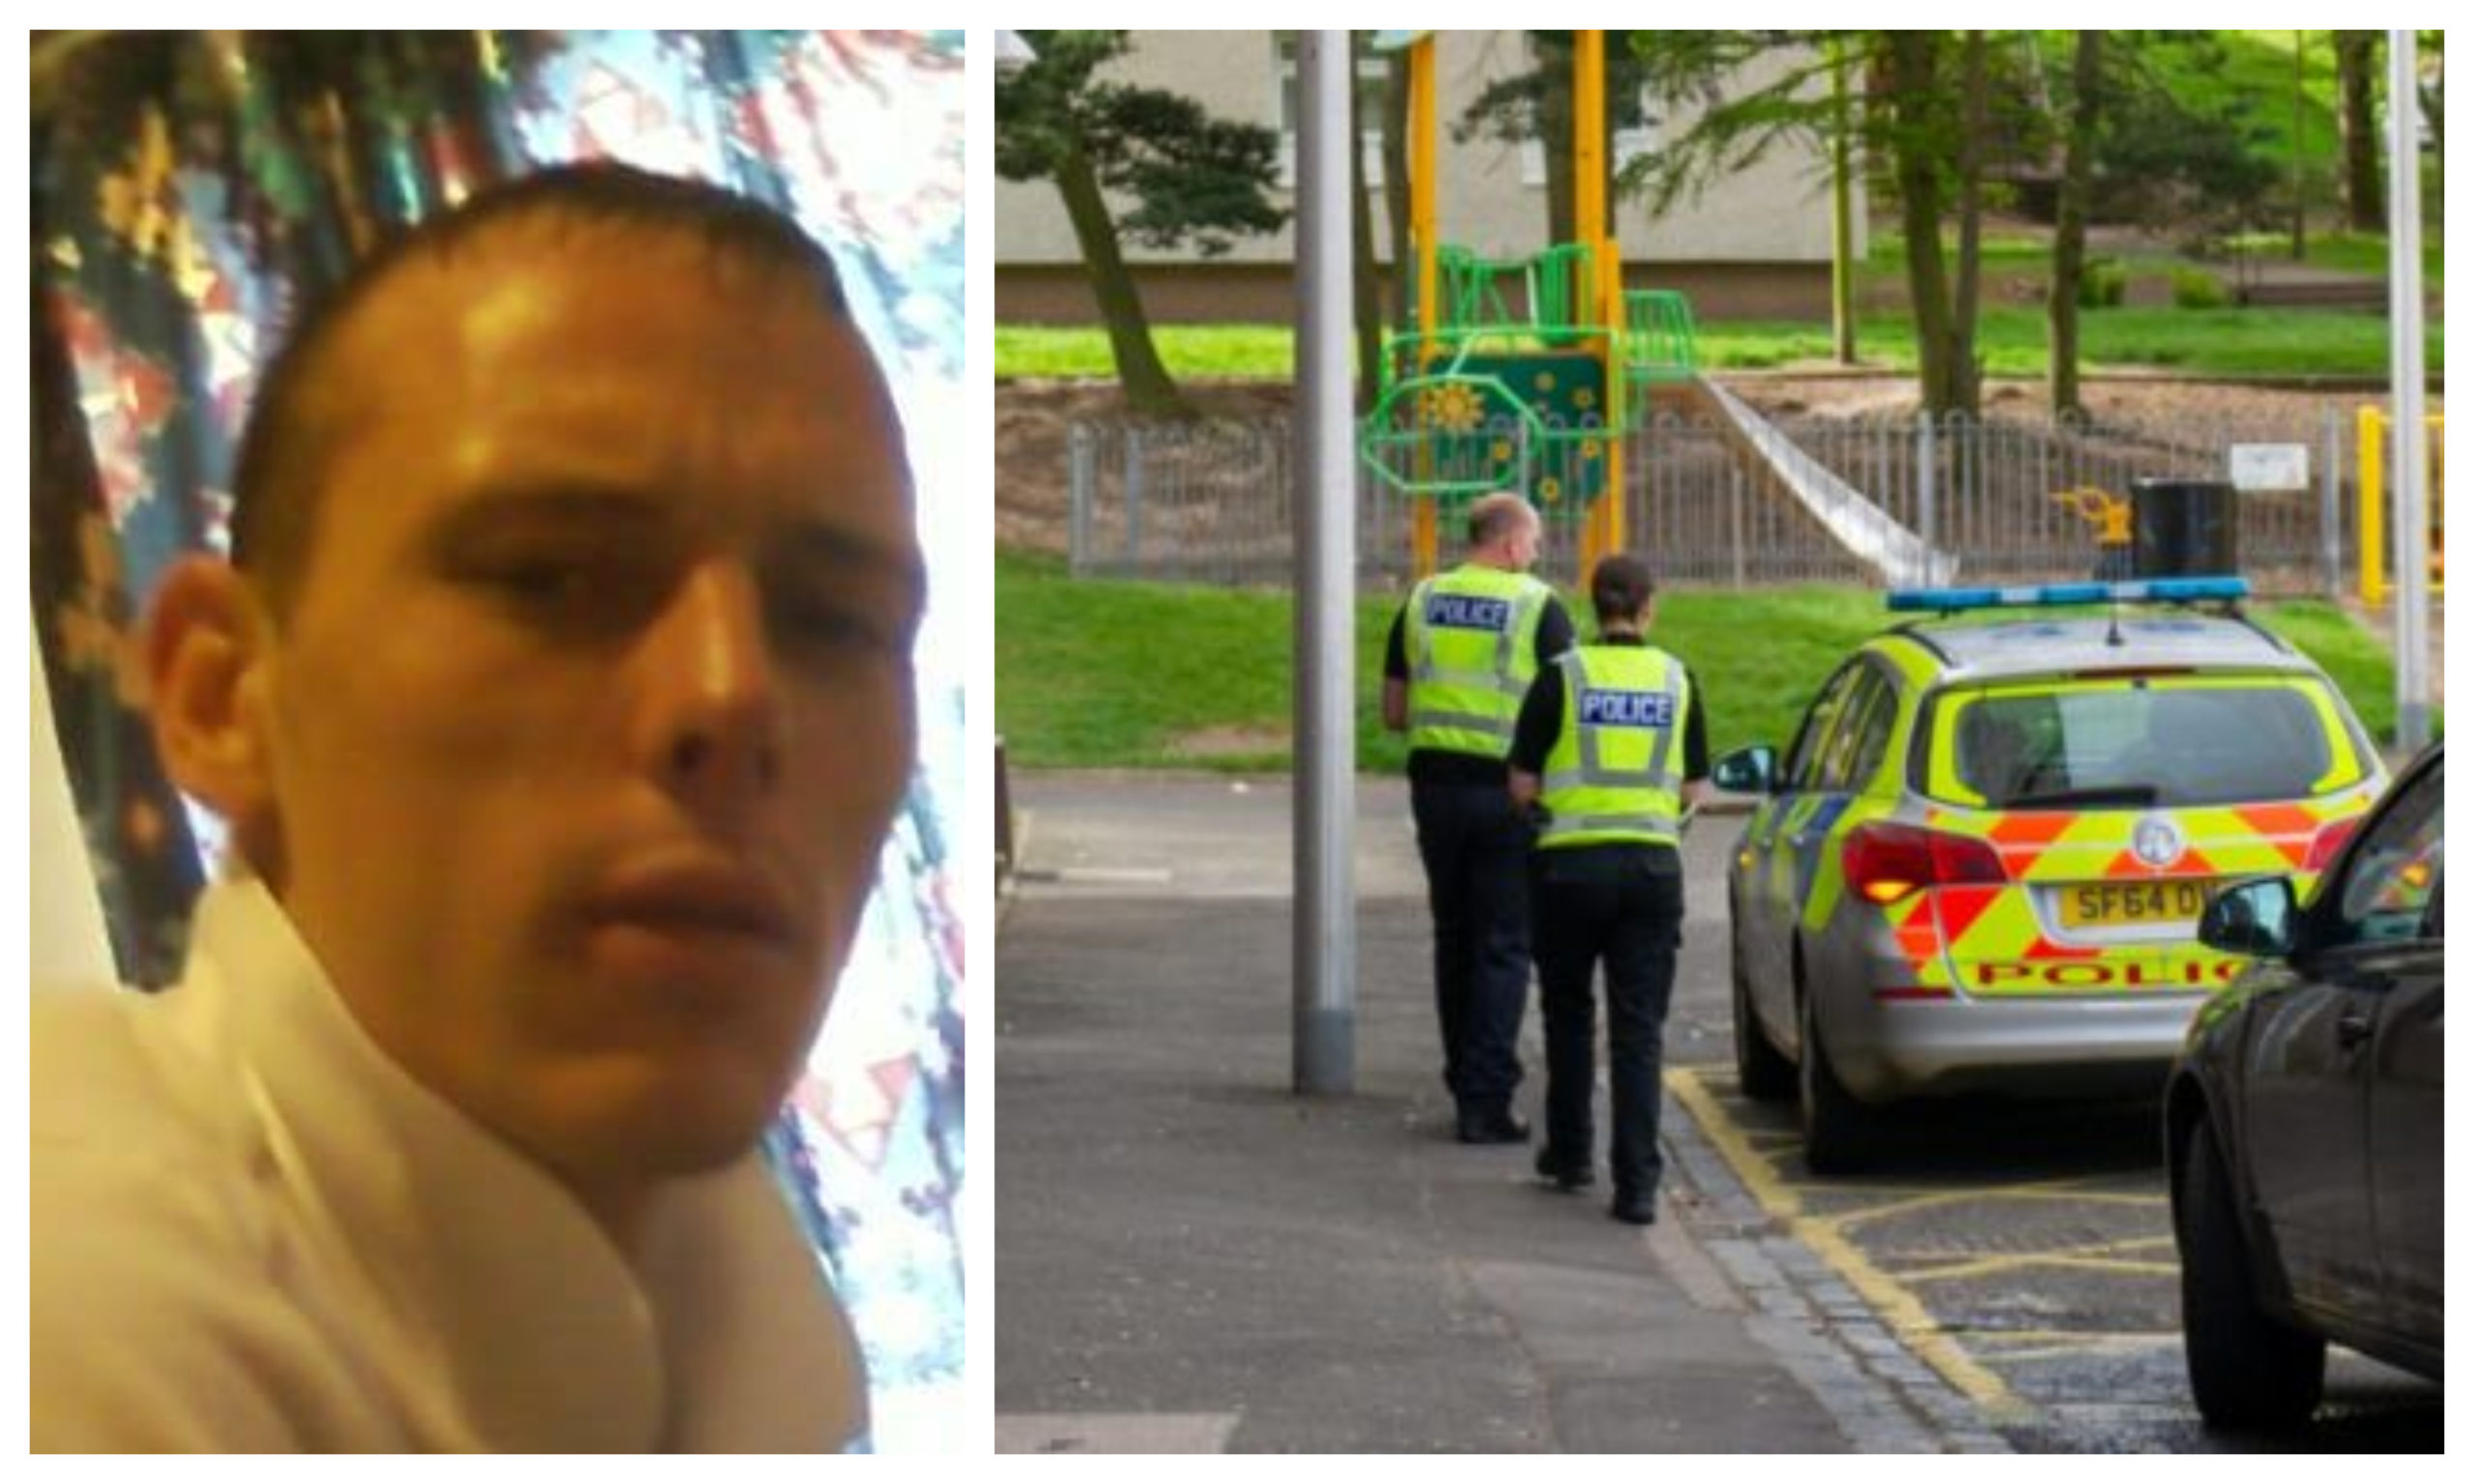 Michael Inglis was found dead on Monday. Police were seen at the incident in Lochee for much of the day.